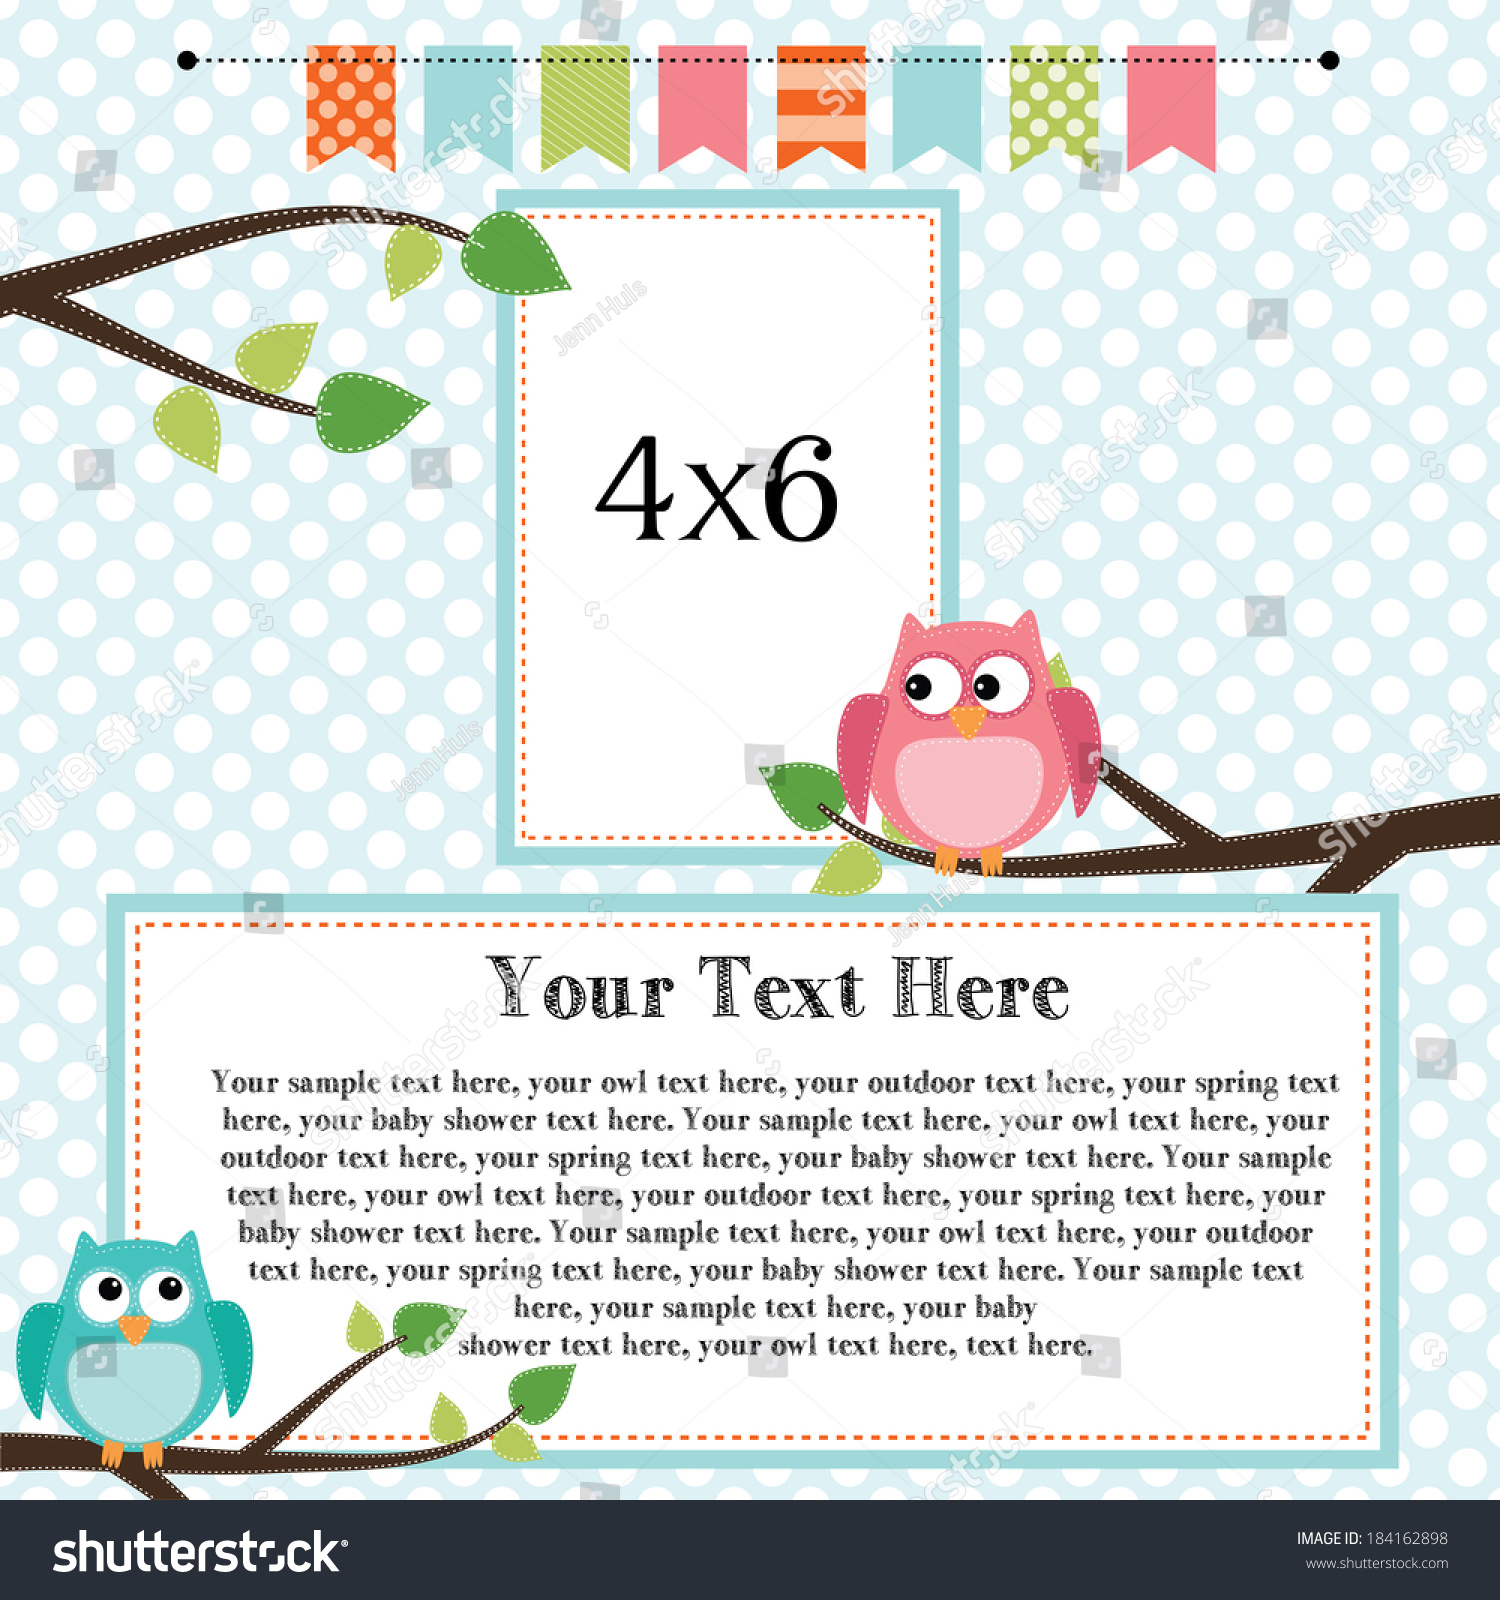 Owl Scrapbooking Template Banner Bunting 4x6 Stock Vector Royalty Free 184162898